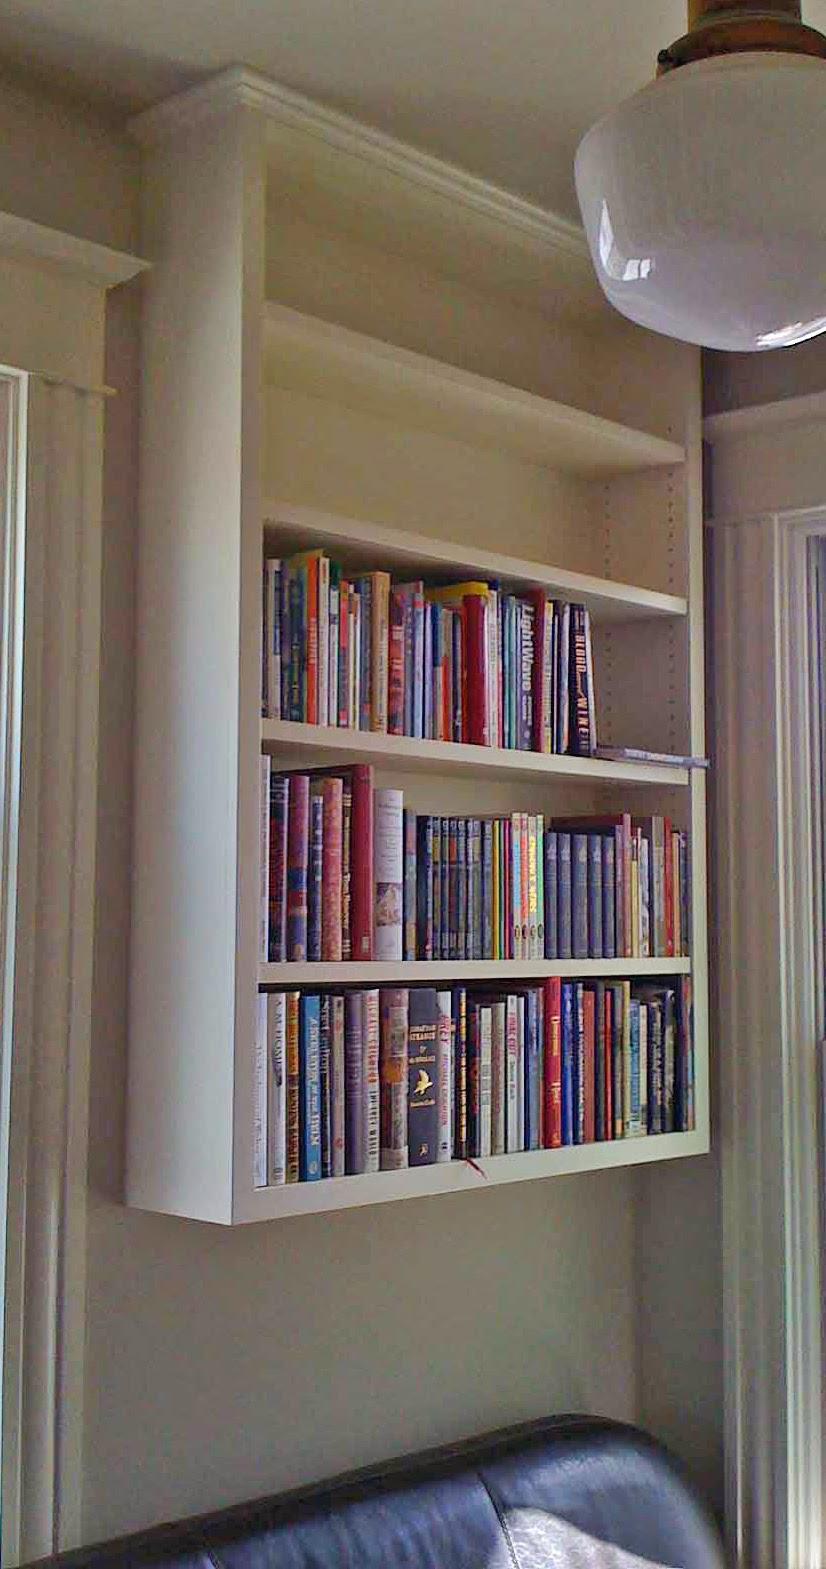 344 Small bookcase hanging on wall and flush with ceiling has adjustable shelves